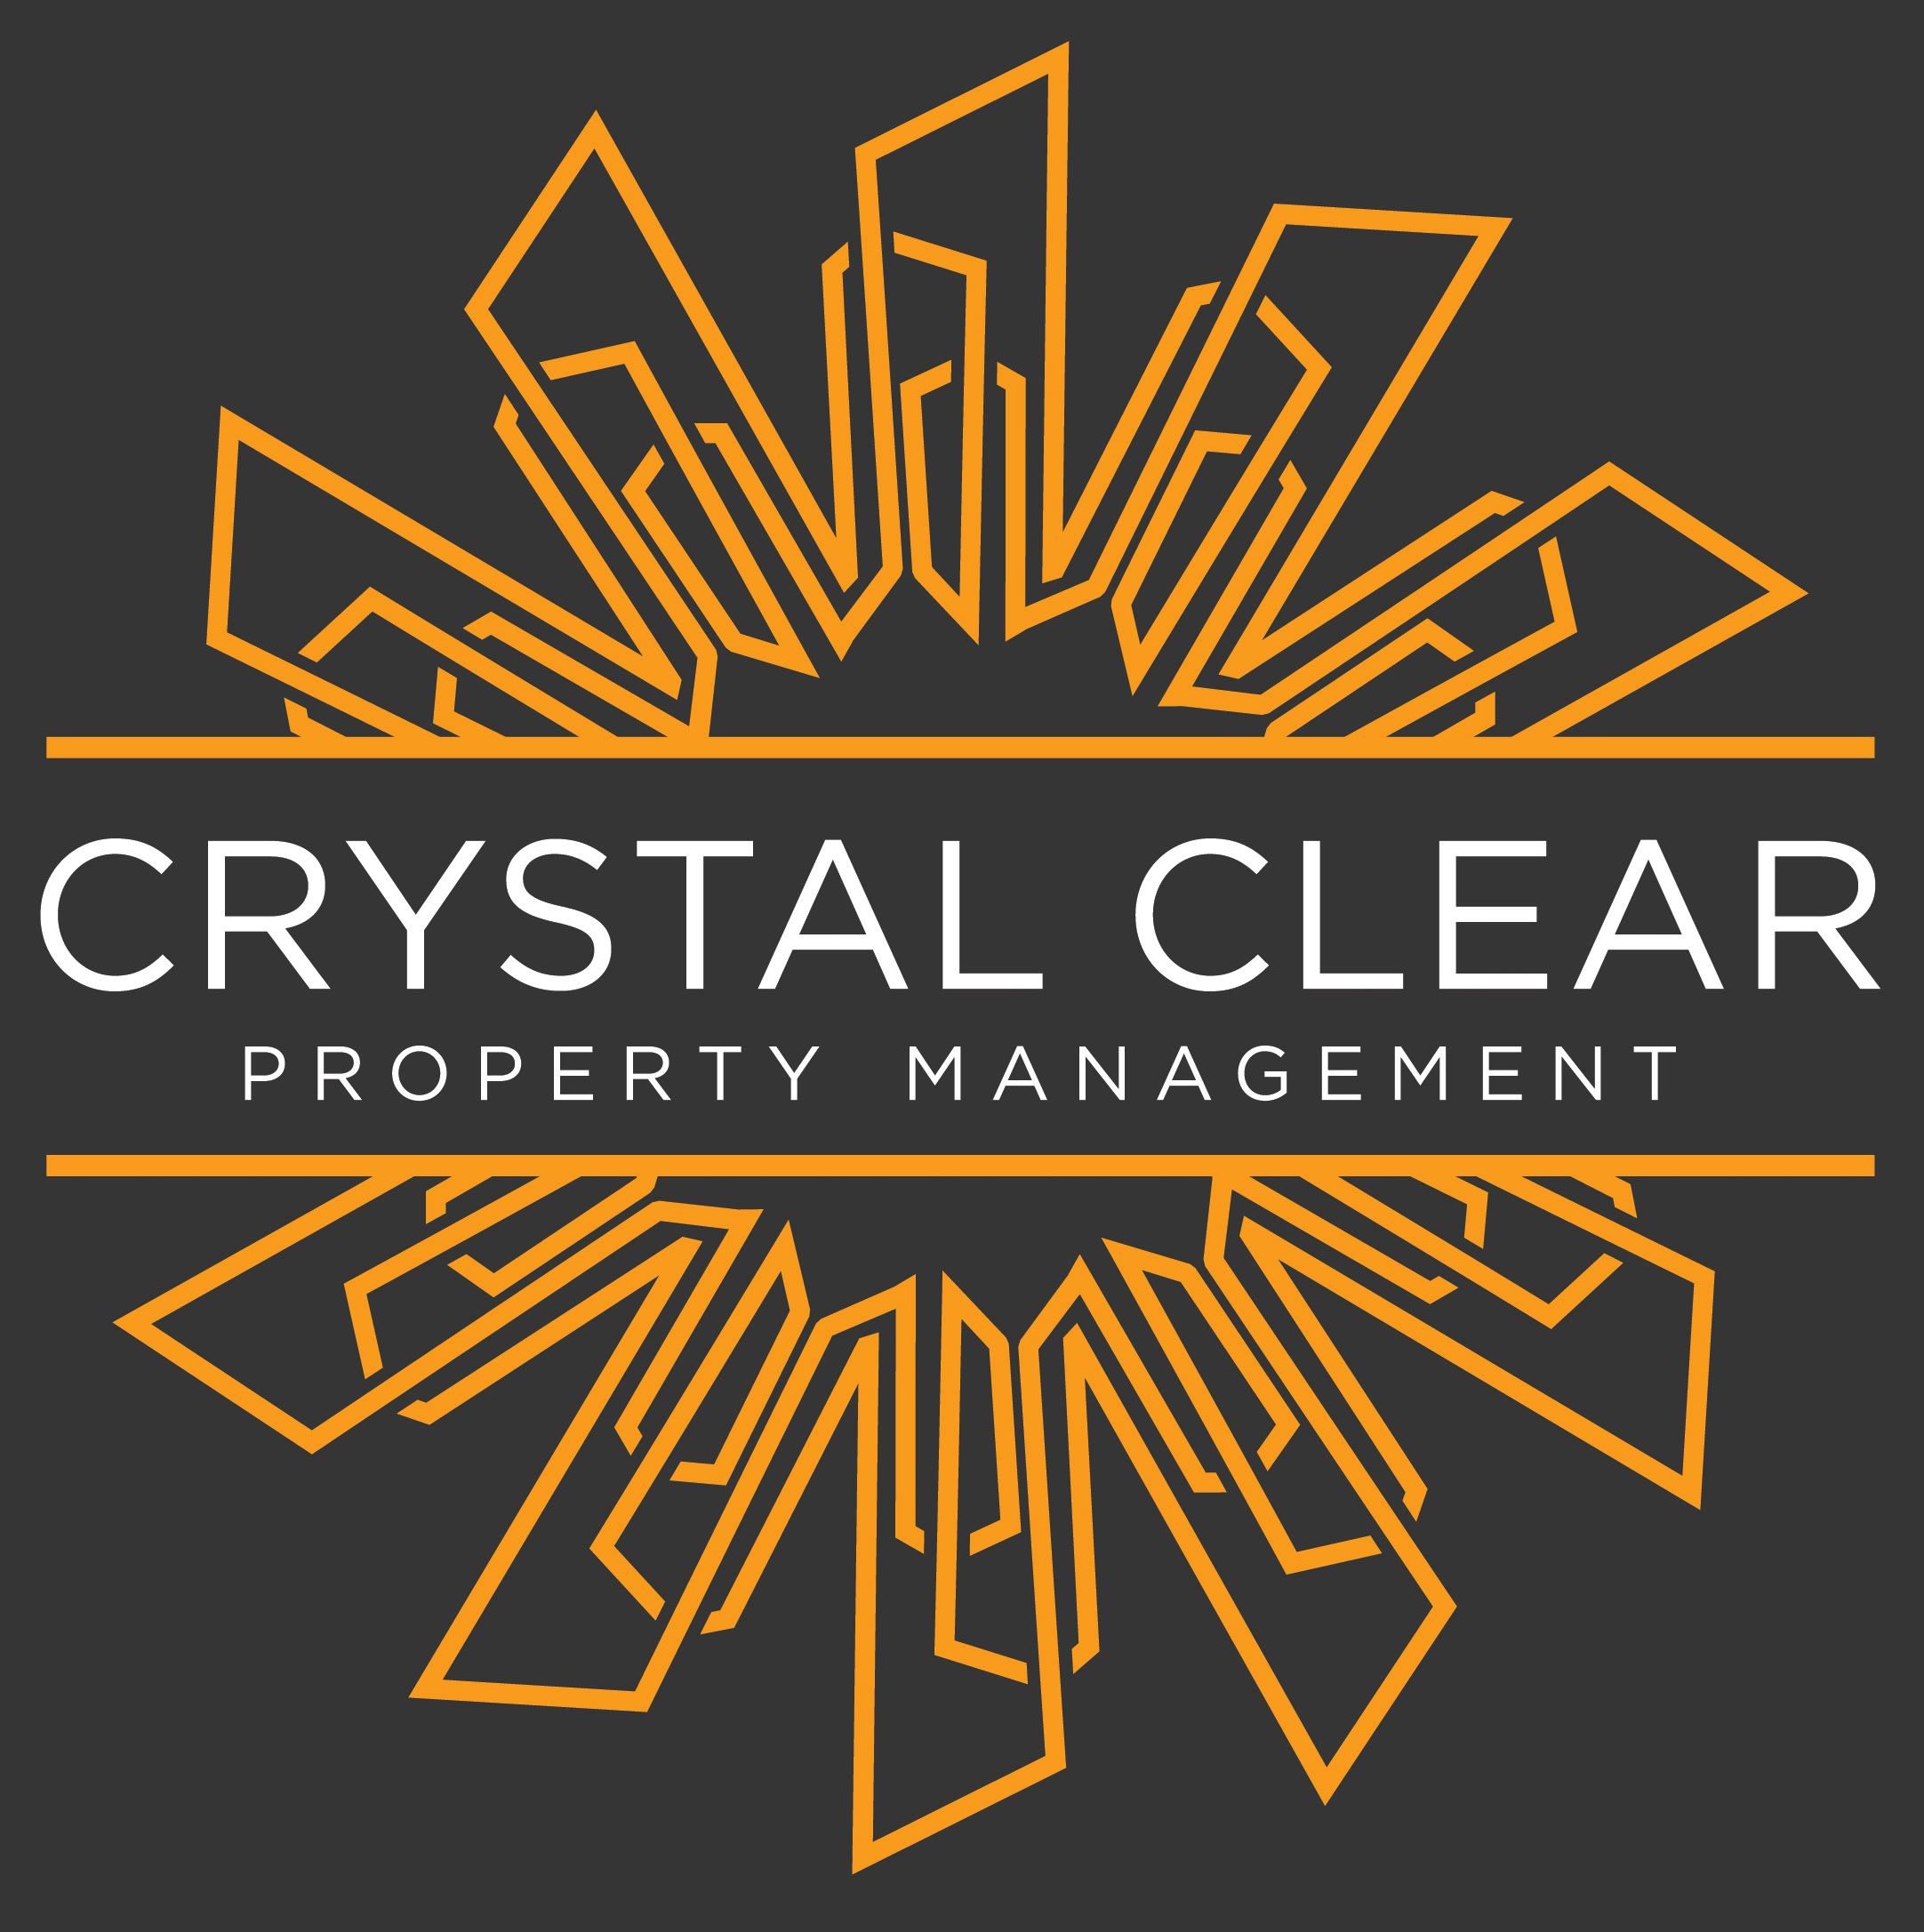 Crystal Clear Property Management